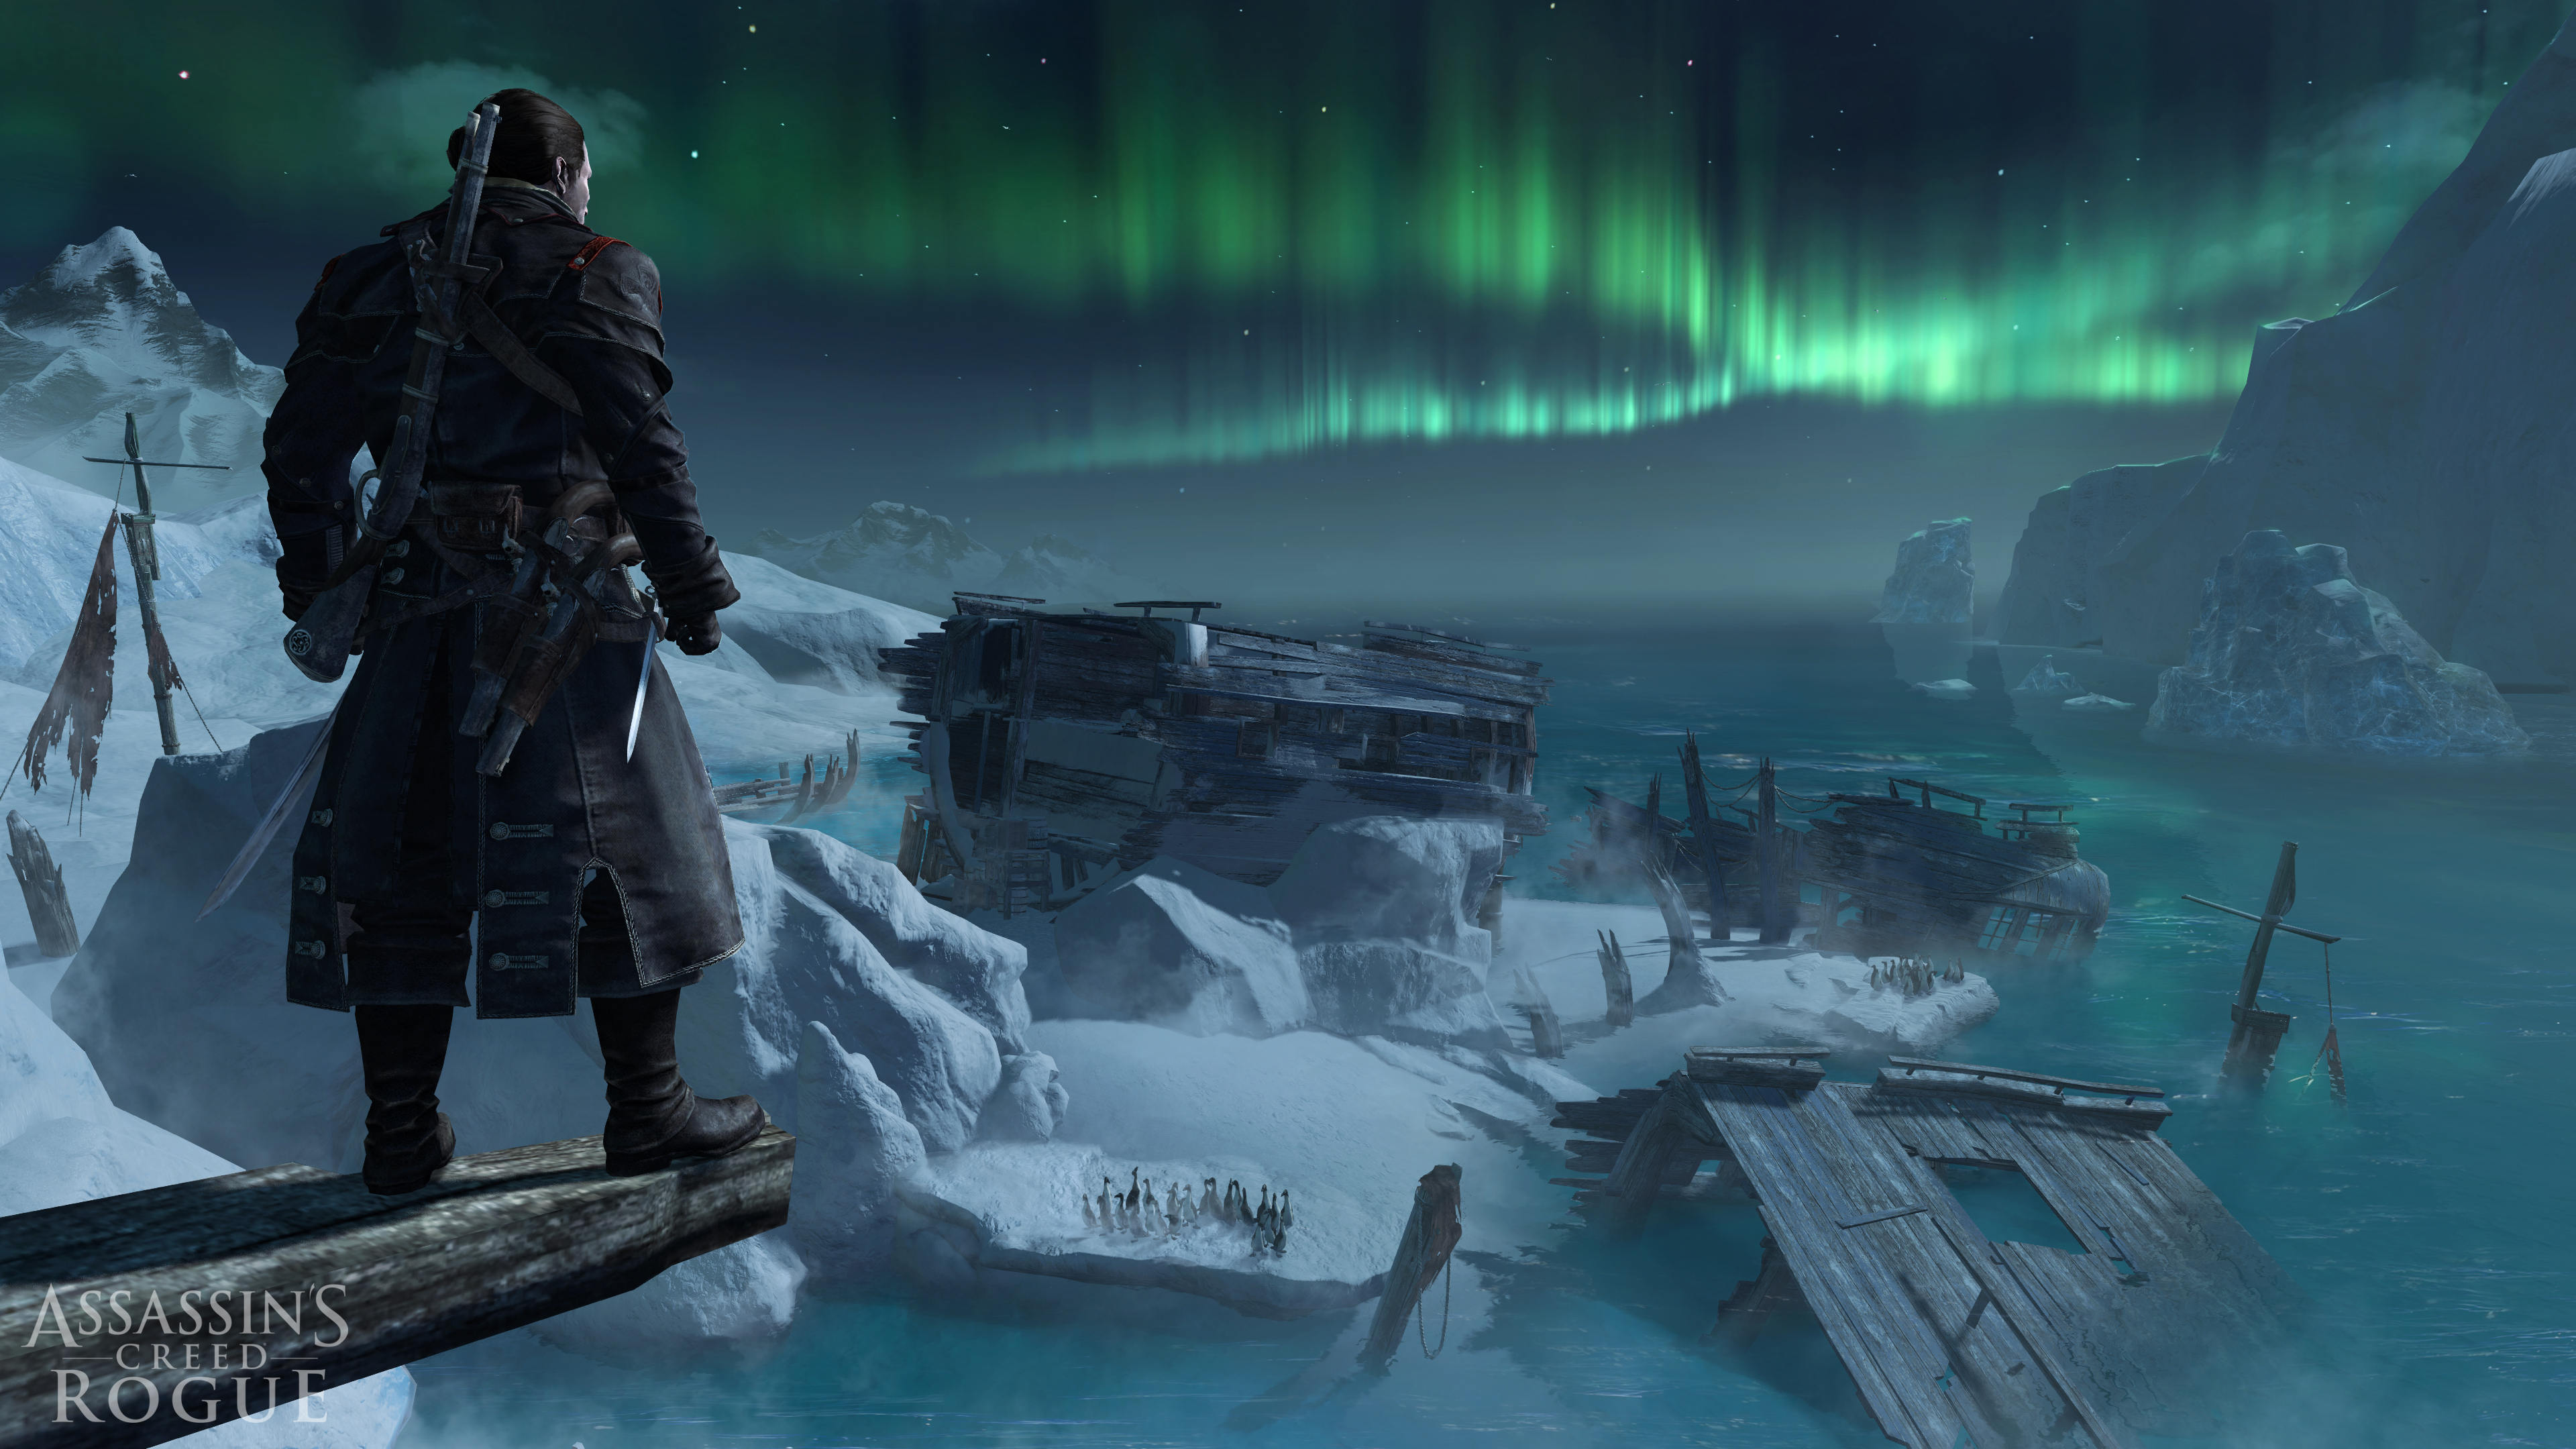 Go Rogue With These Assassins Creed Rogue Screenshots